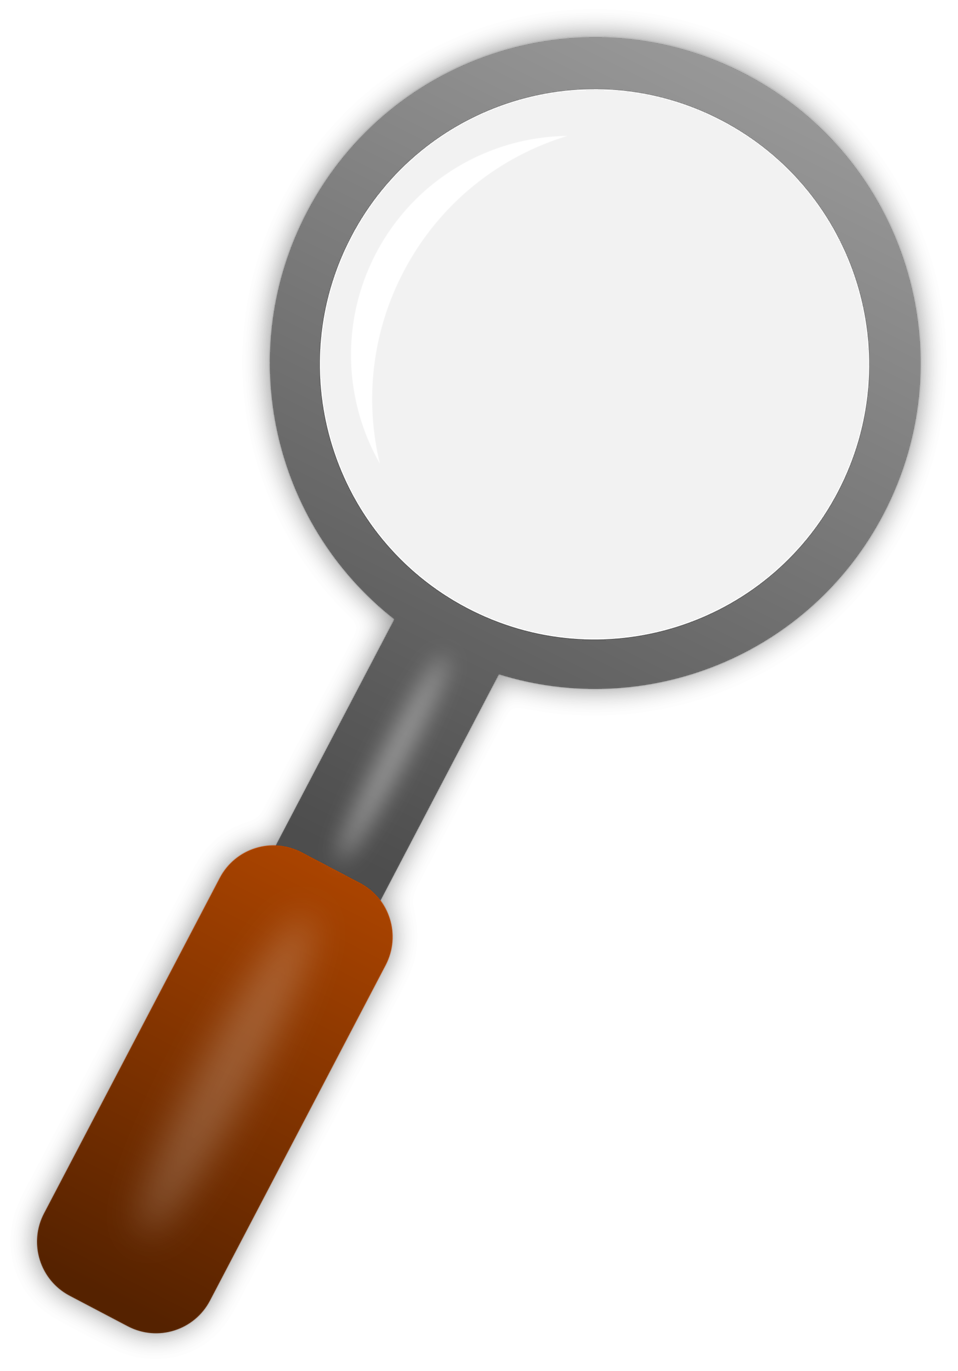 Magnifying glass and book clipart clip download Magnifying glass free stock photo a magnifying clip art - Cliparting.com clip download